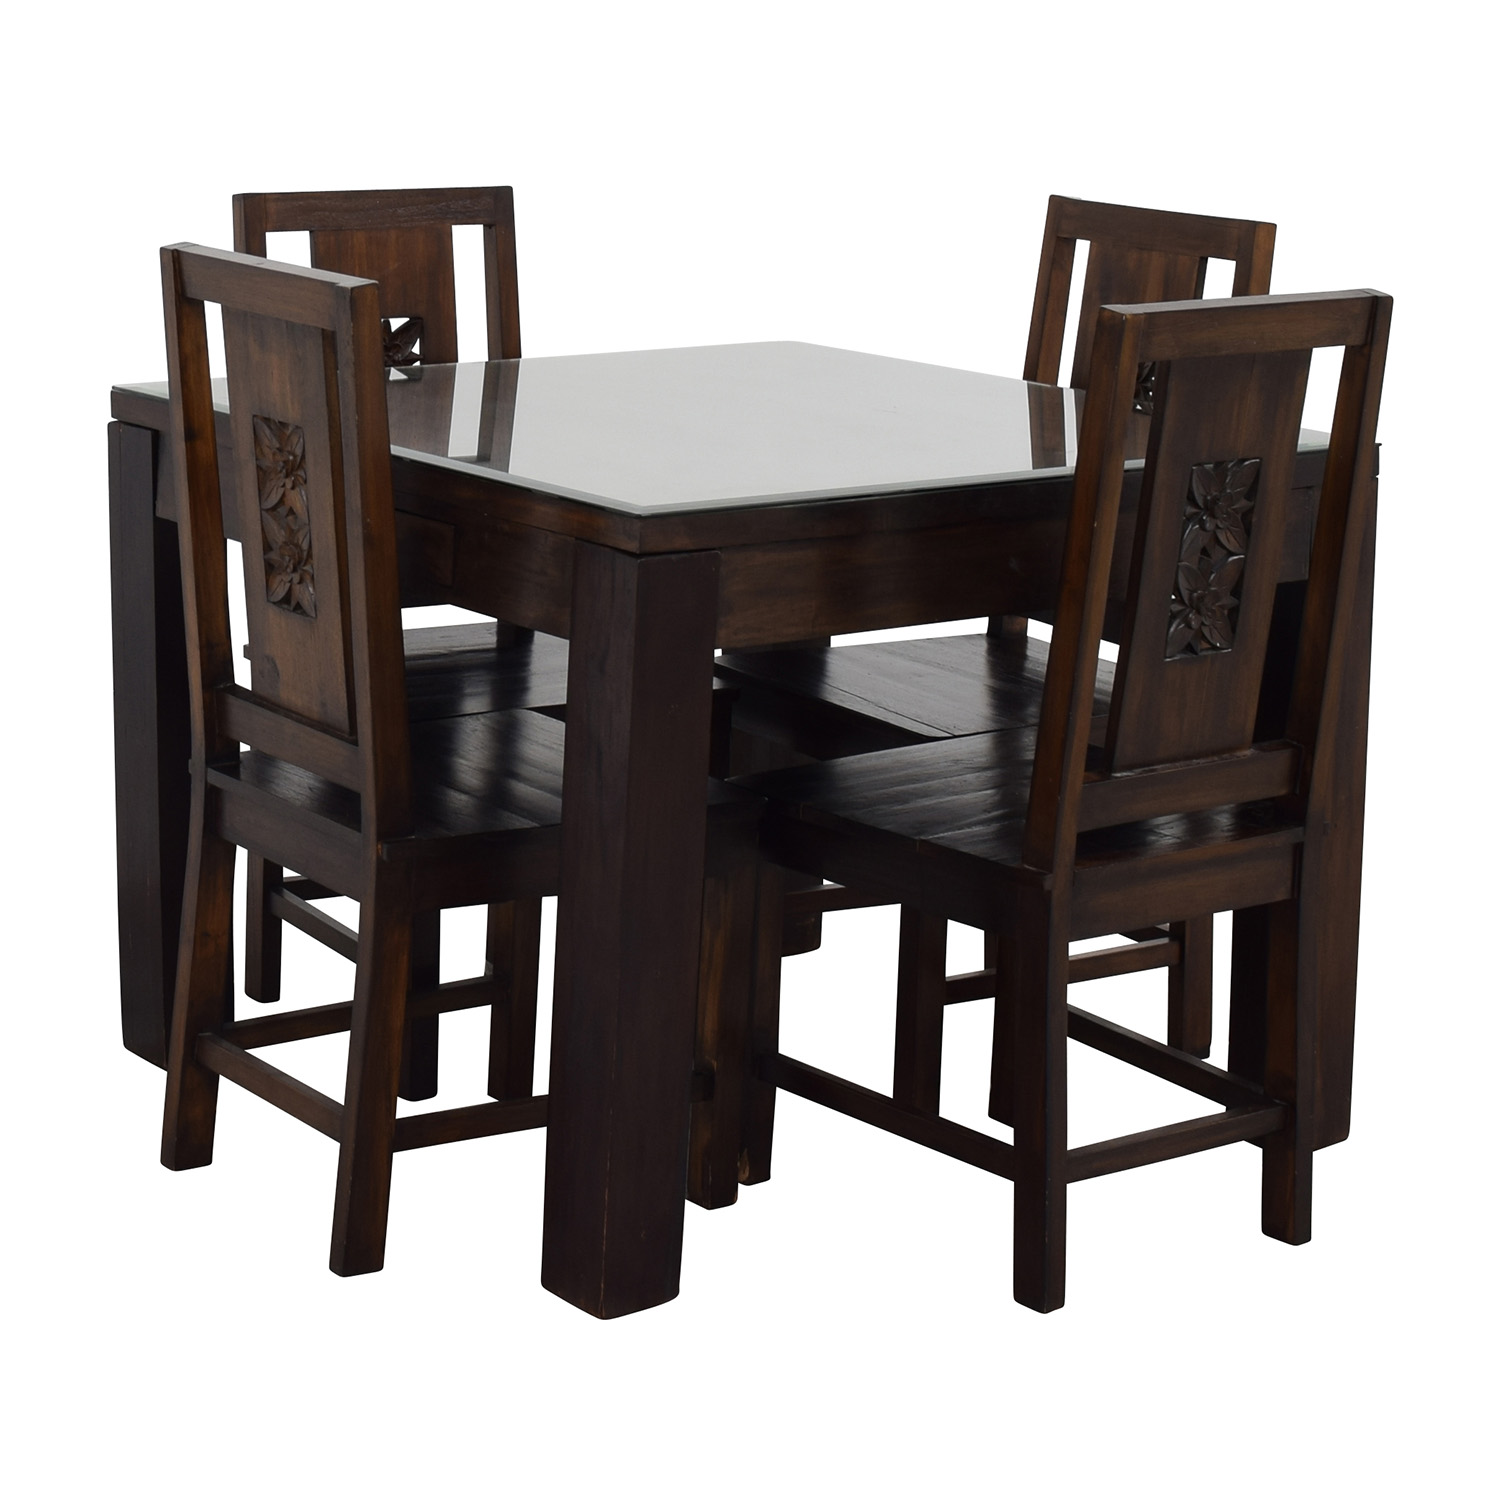 90 off balinese teak dining table set tables. Black Bedroom Furniture Sets. Home Design Ideas